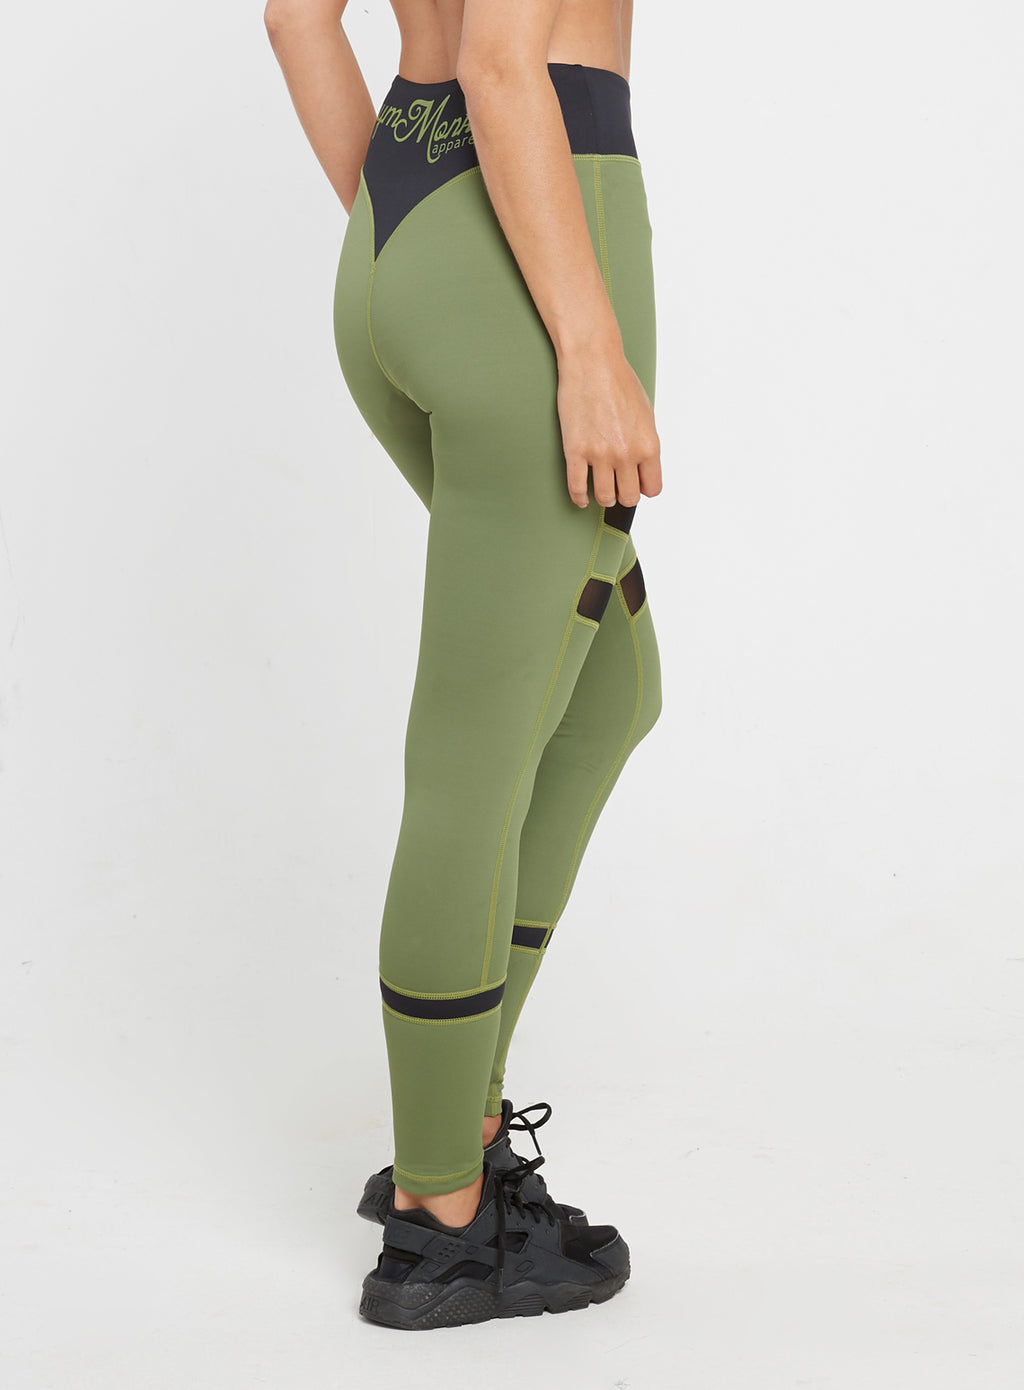 Gym Monkee - Ladies Black and Khaki Leggings RIGHT